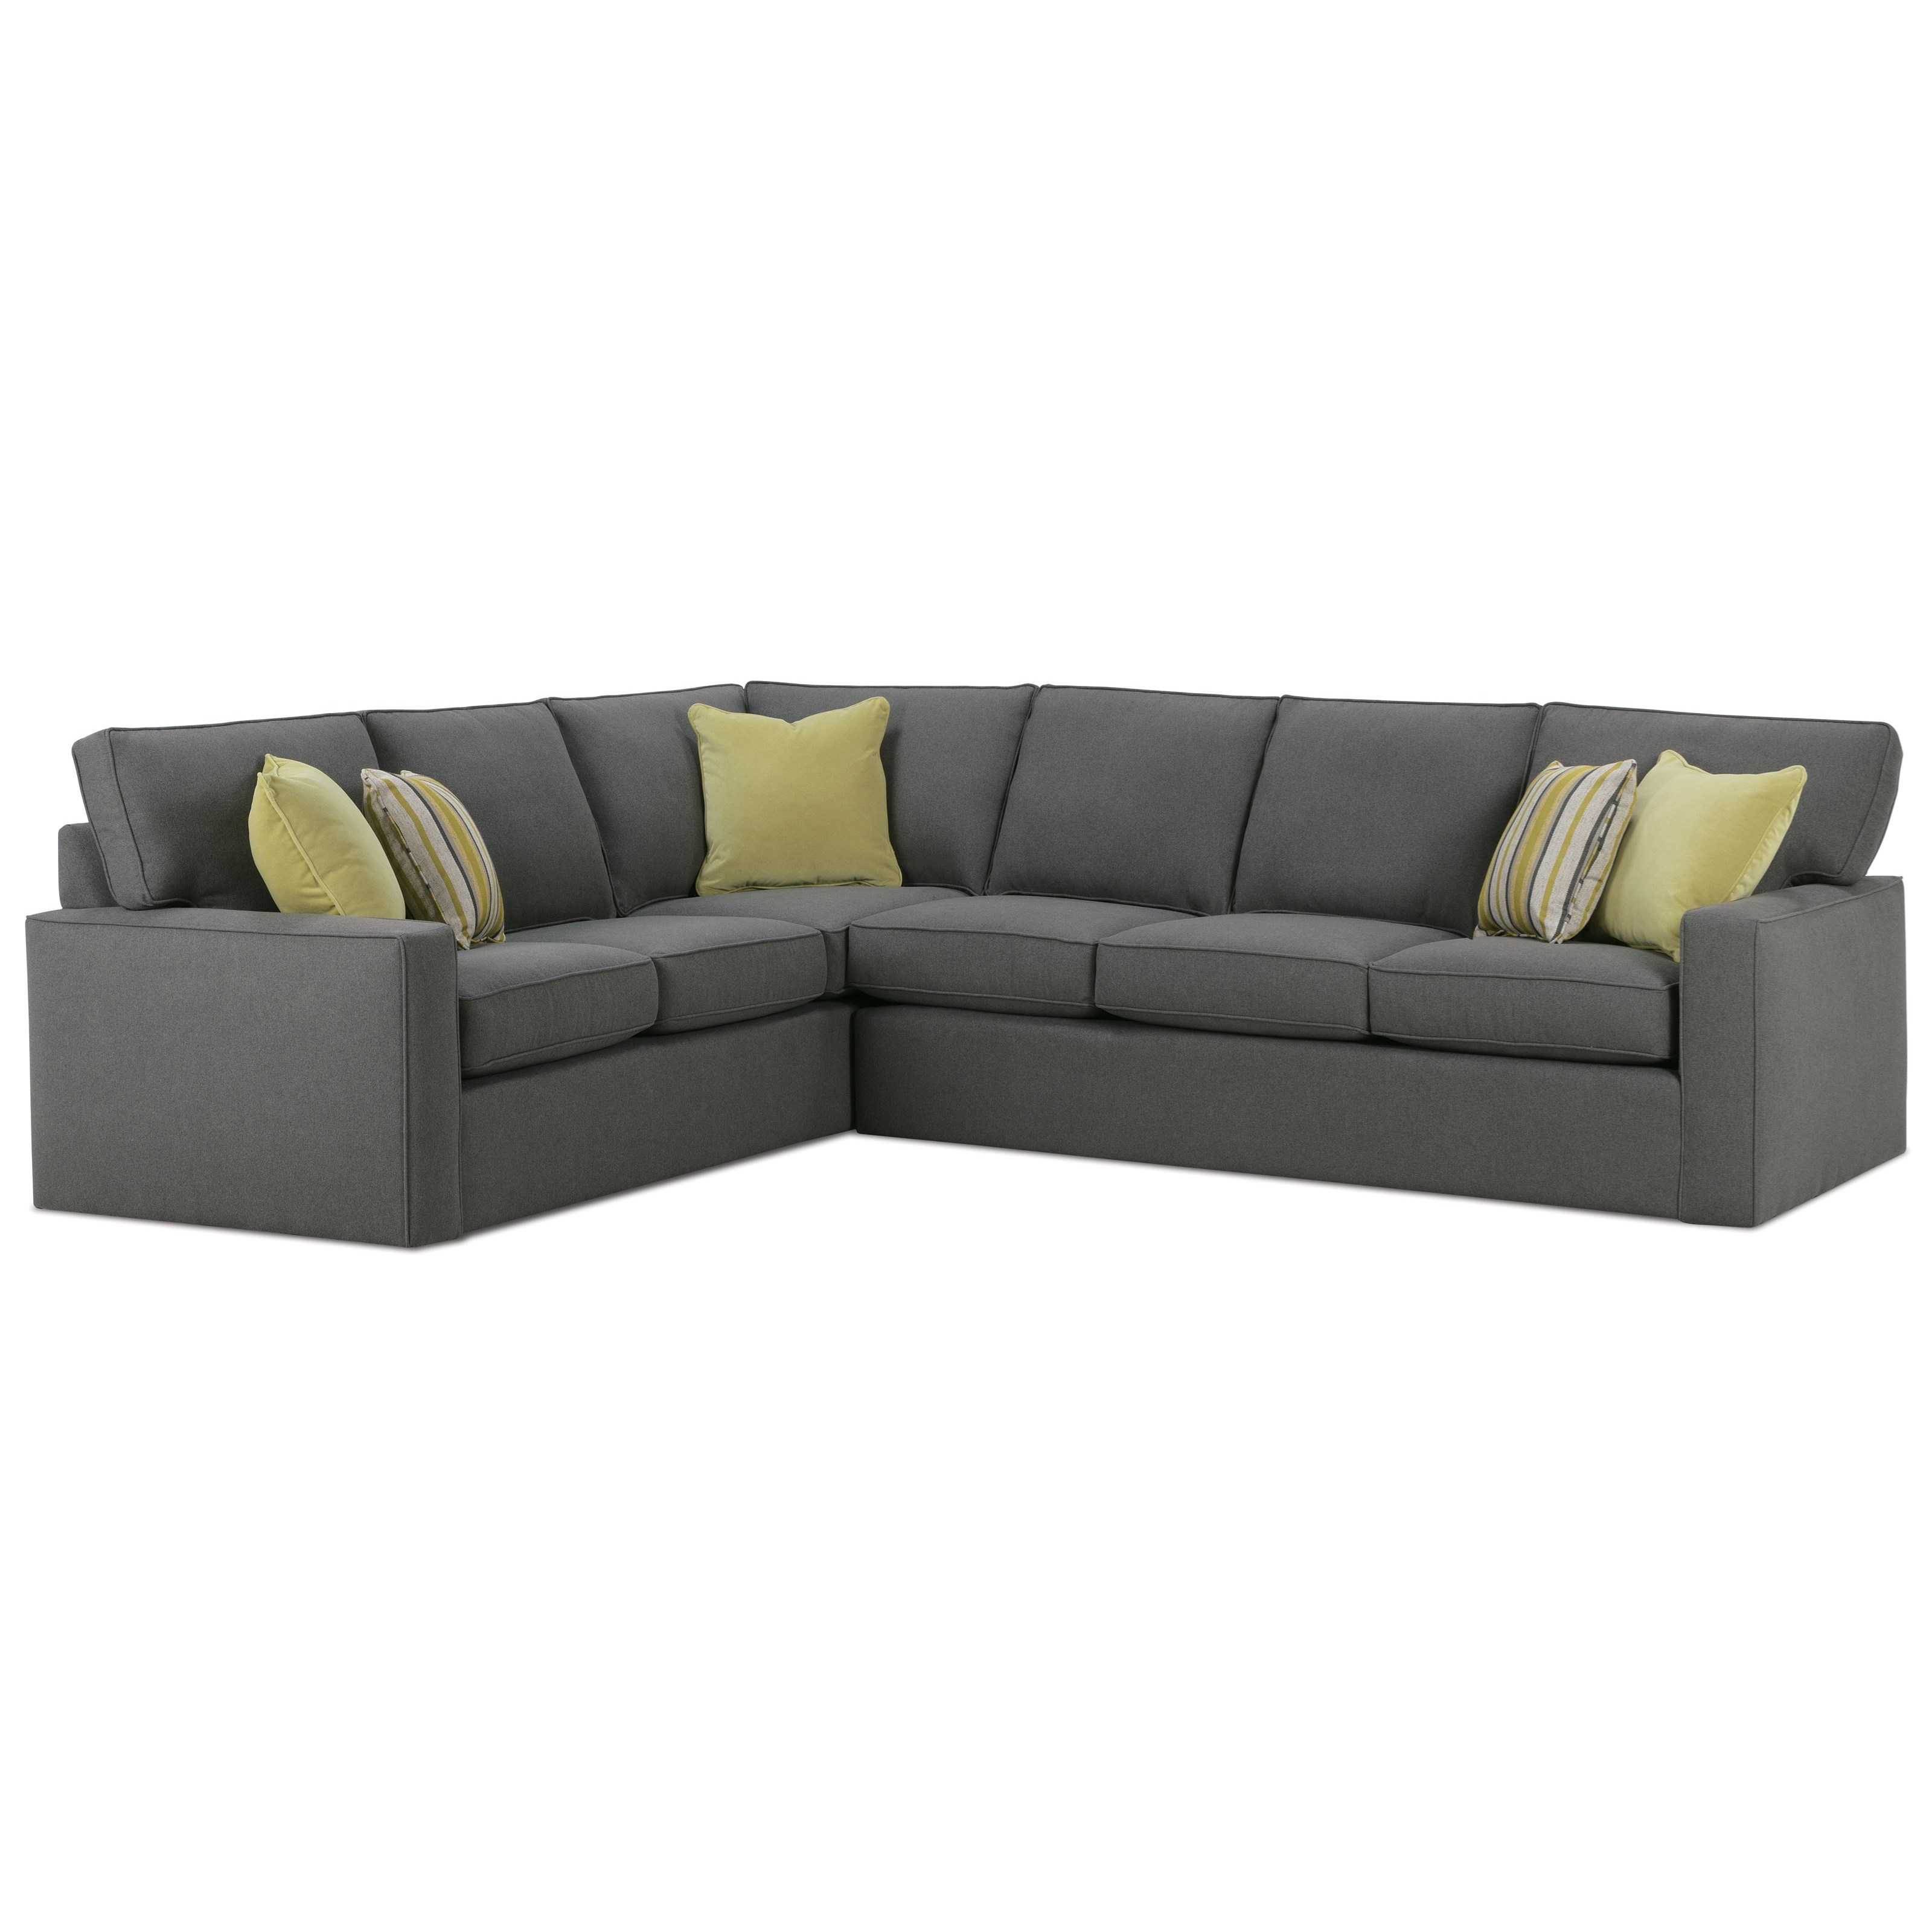 Monaco Sectional Sofa by Rowe at Lindy's Furniture Company